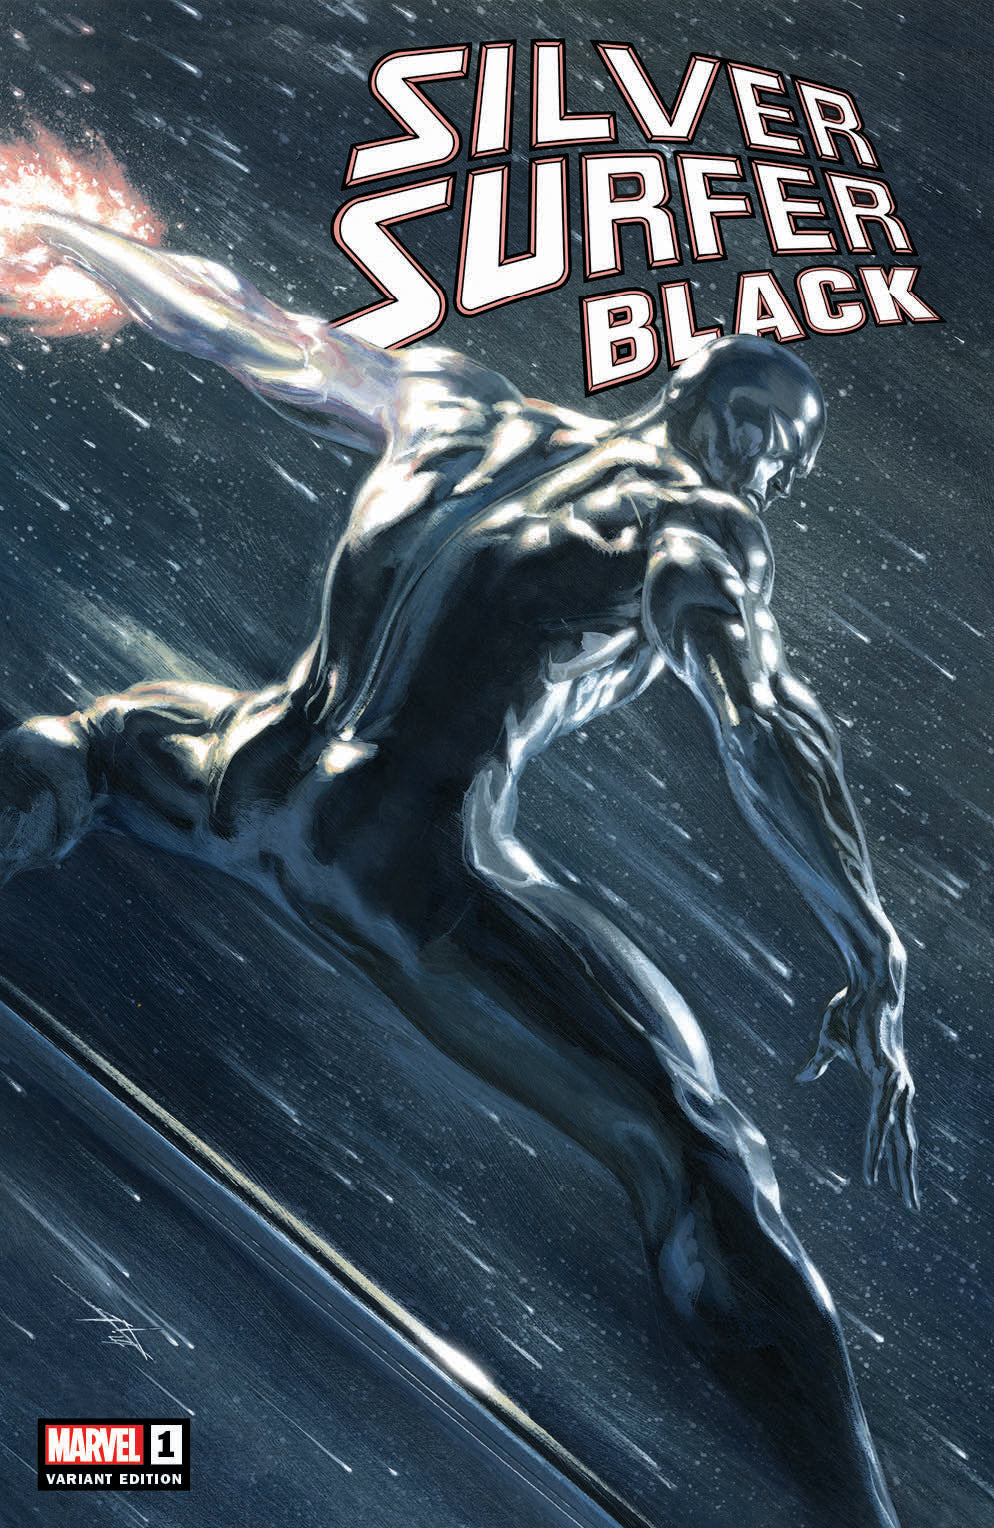 Silver Surfer Black #1 Trade Dress Cover by Gabriele Dell'Otto